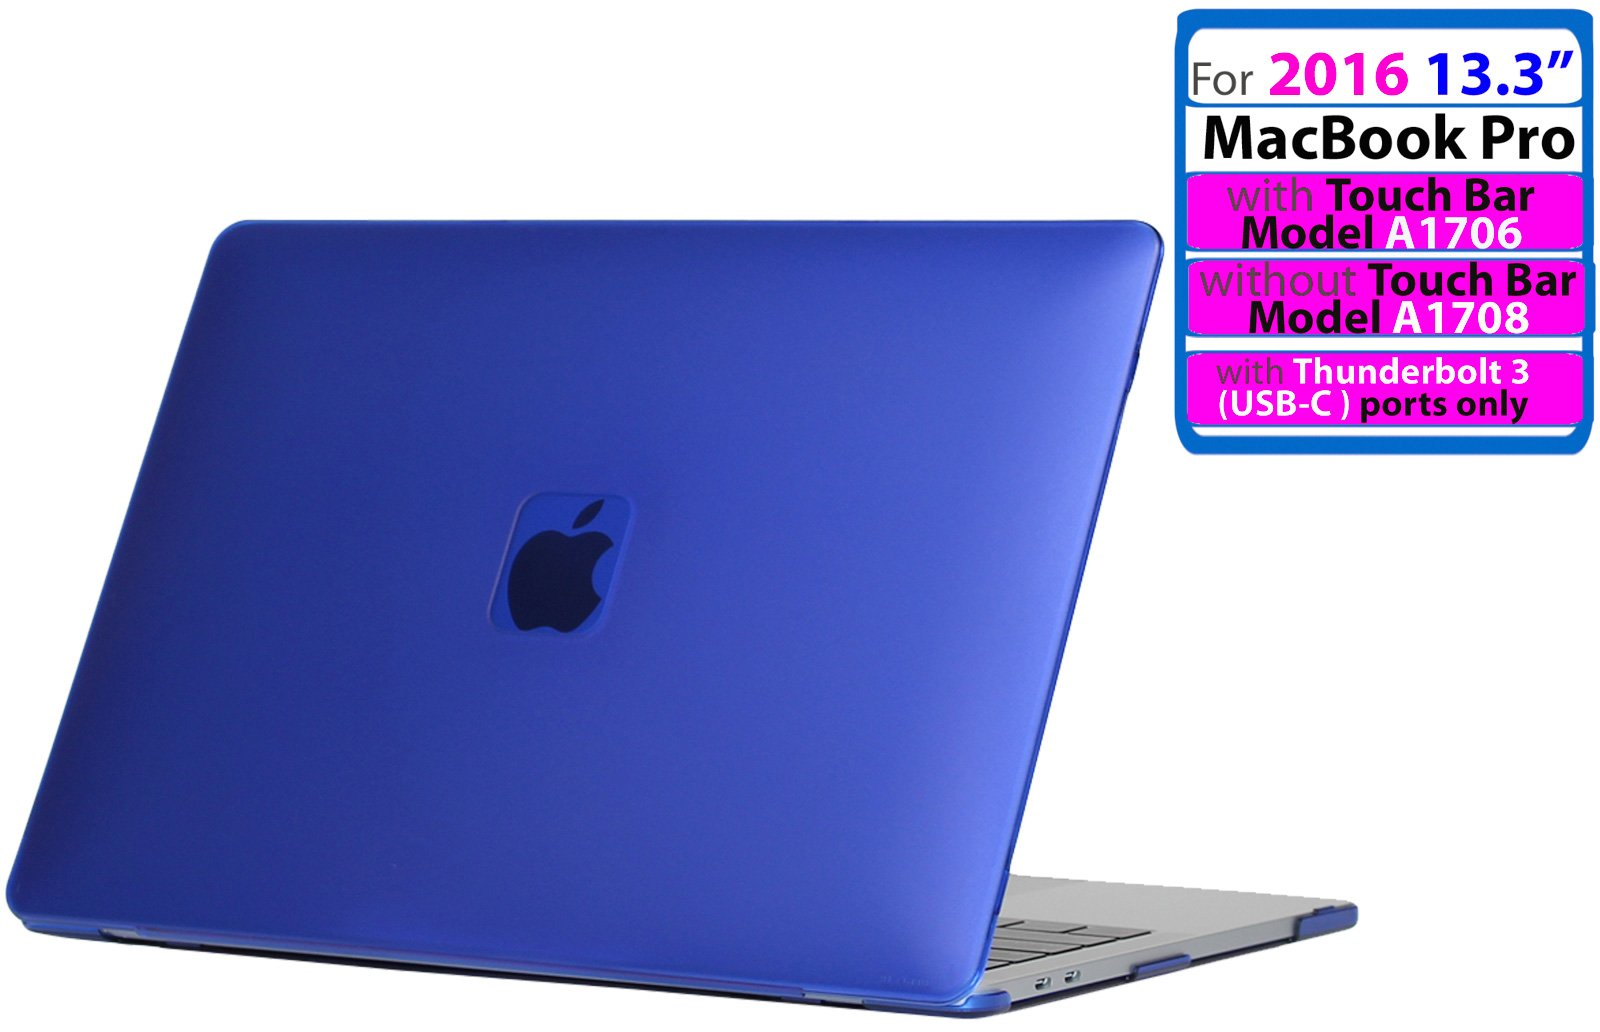 iPearl mCover Hard Shell Case for 13-inch Model A1425 / A1502 MacBook Pro (with 13.3-inch Retina Display) (Blue)